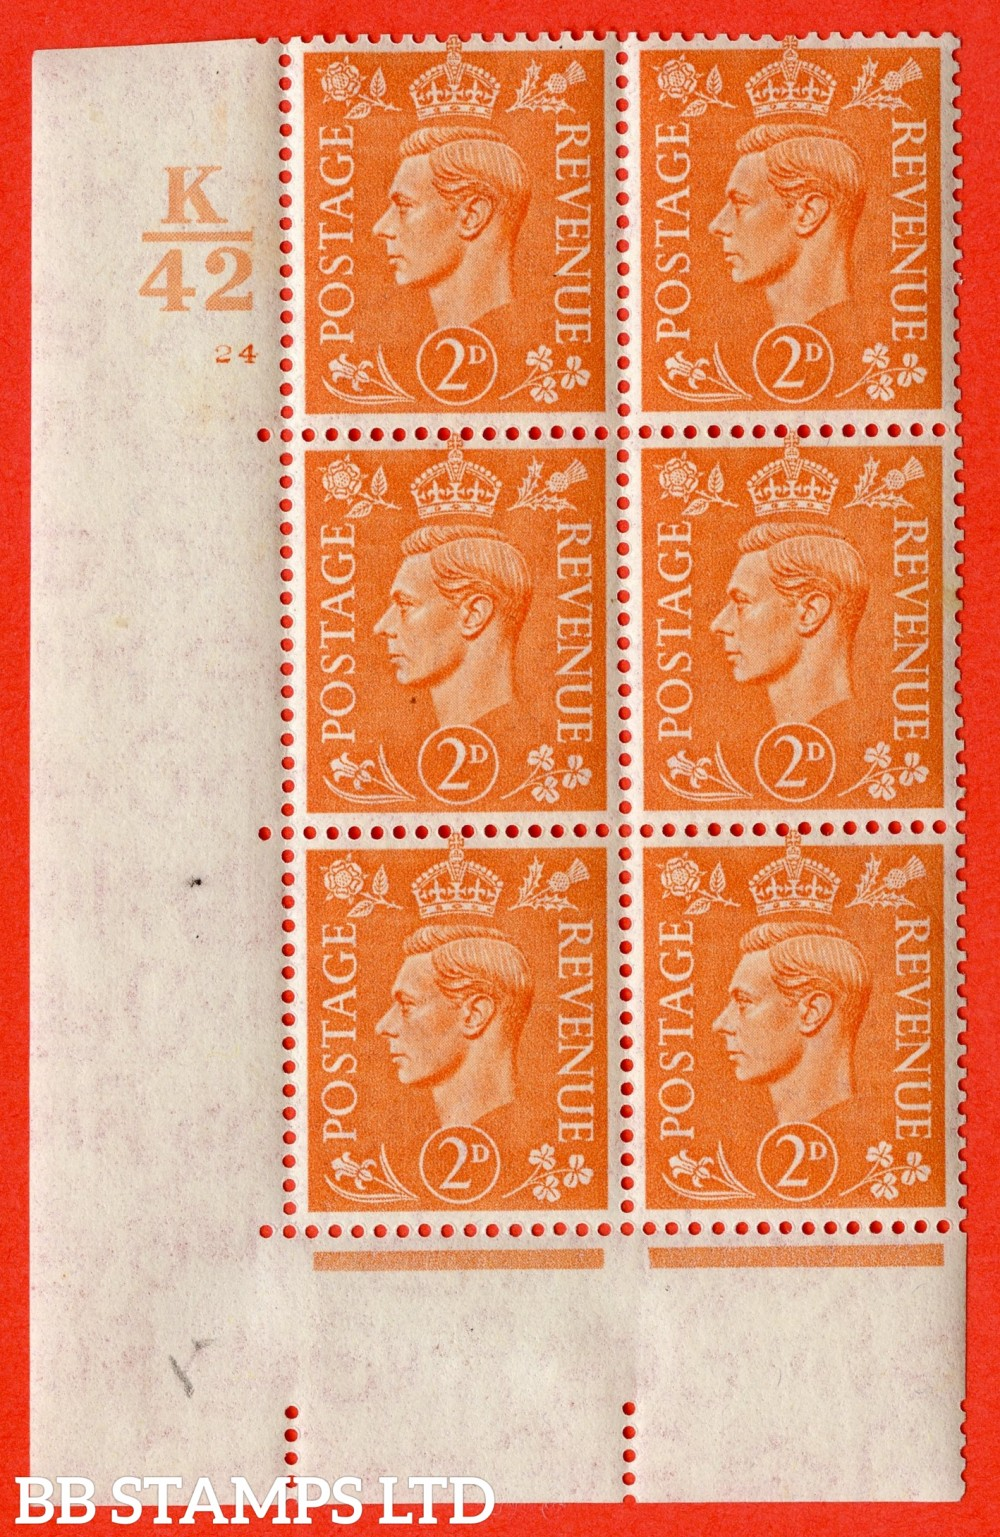 "SG. 488. Q11. 2d Pale Orange. A fine ligthtly mounted mint "" Control K42 cylinder 24 no dot "" control block of 6 with perf type 5 E/I."